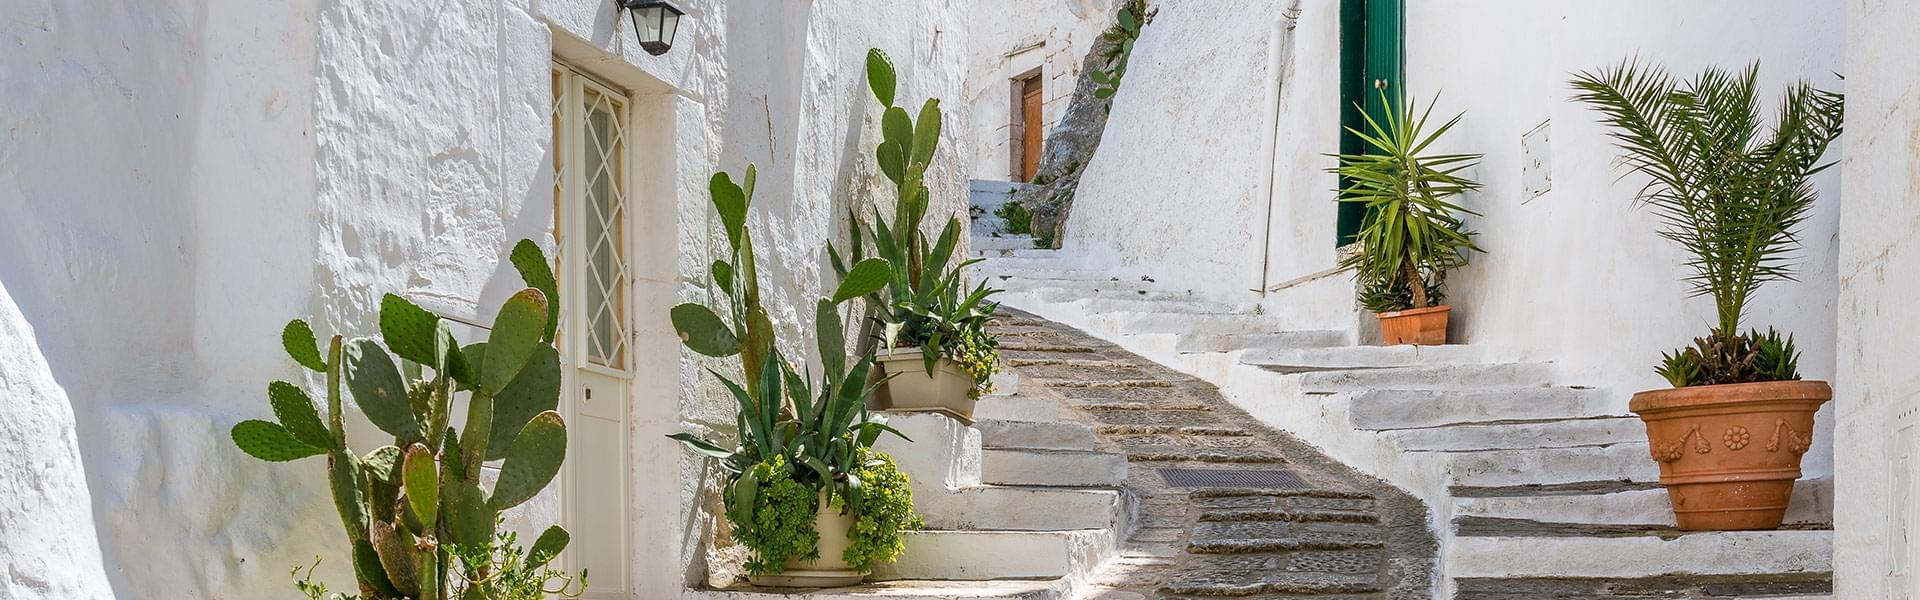 Places to stay in Puglia, trullo holidays, family villa with pool, Puglia vacation rentals, Puglia services and rentals, holiday villas